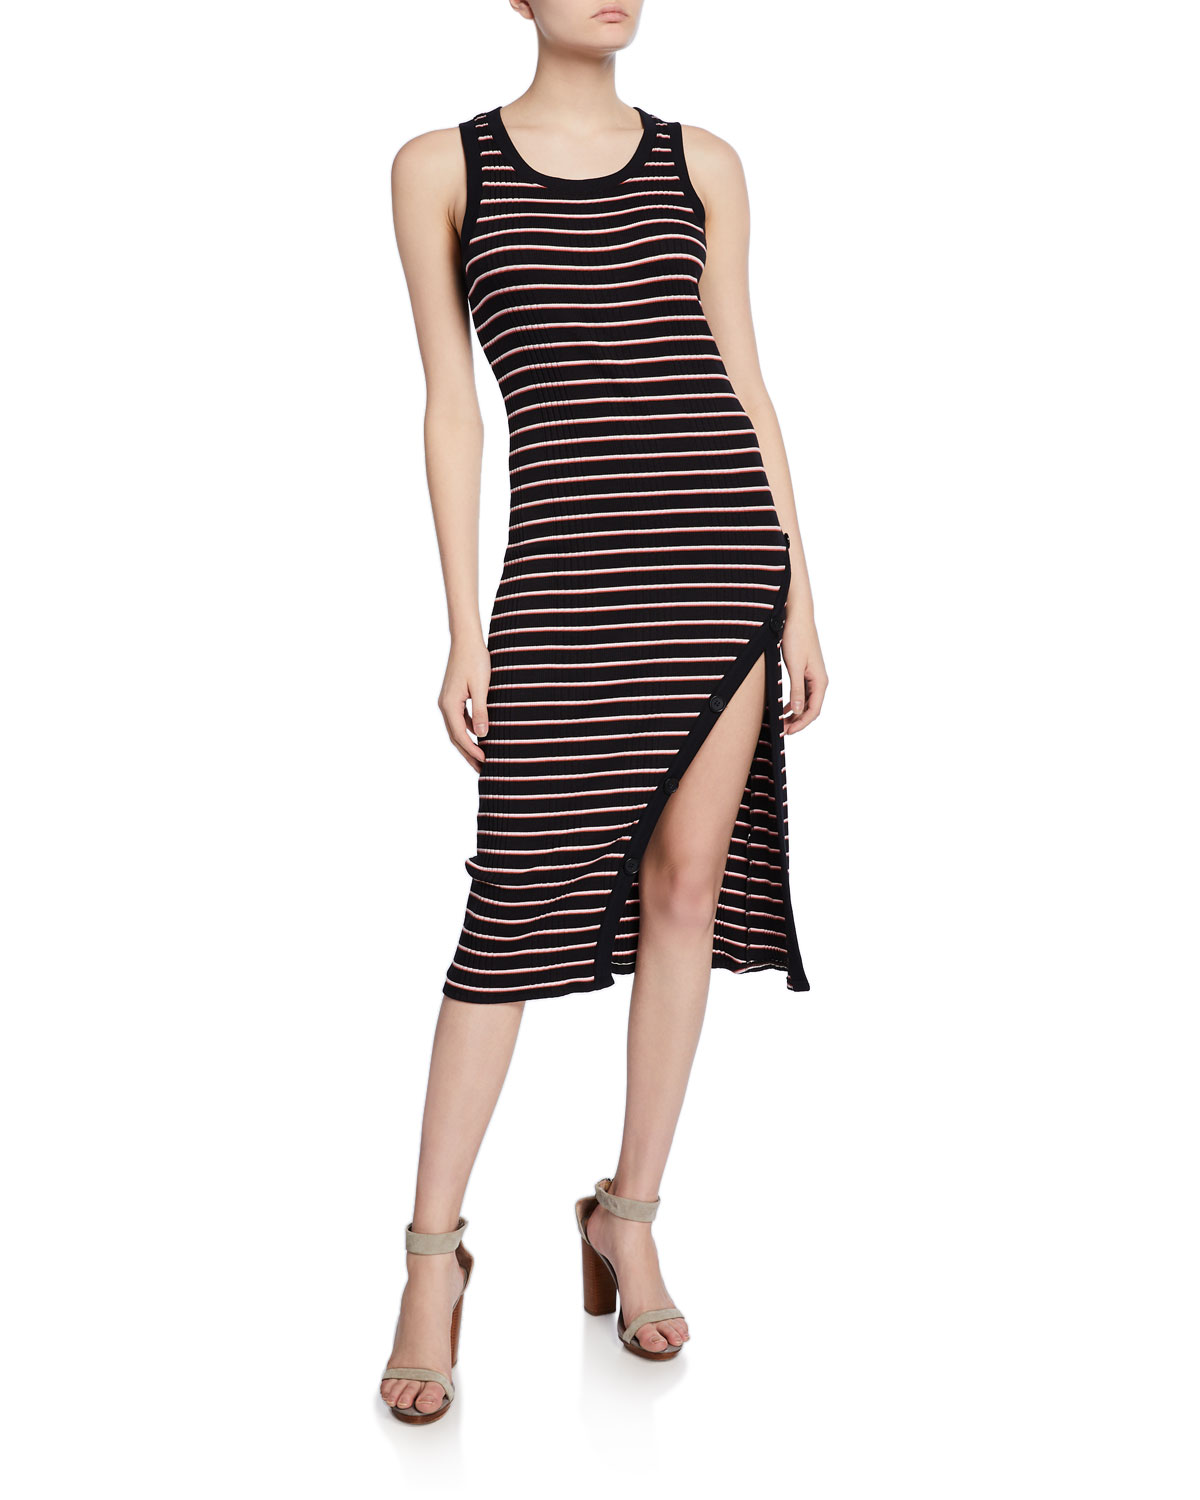 Joie Dresses POLYMELA STRIPED TANK DRESS WITH BUTTONS